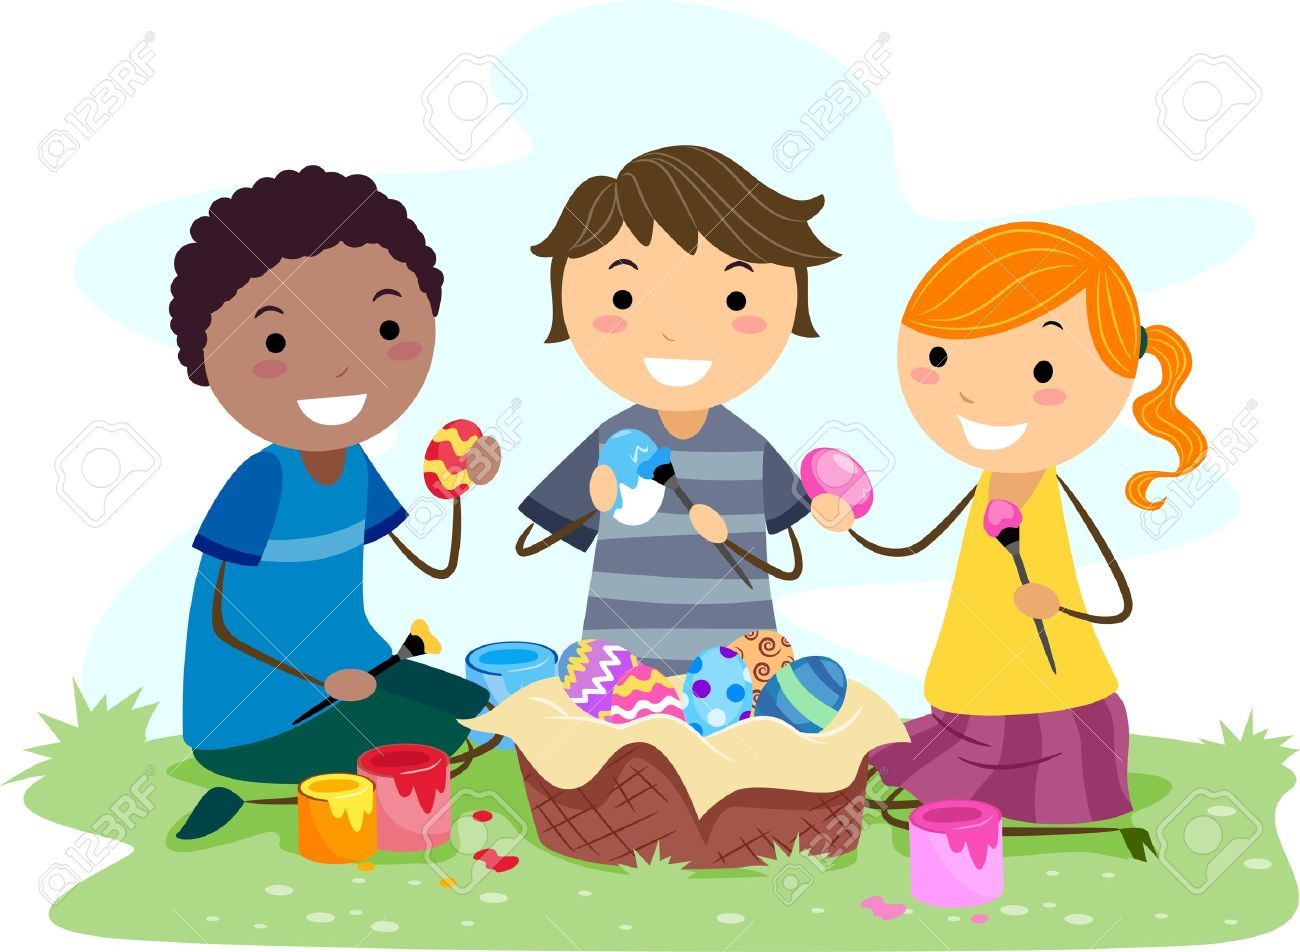 Illustration Of Kids Making Easter Eggs Stock Photo, Picture And.